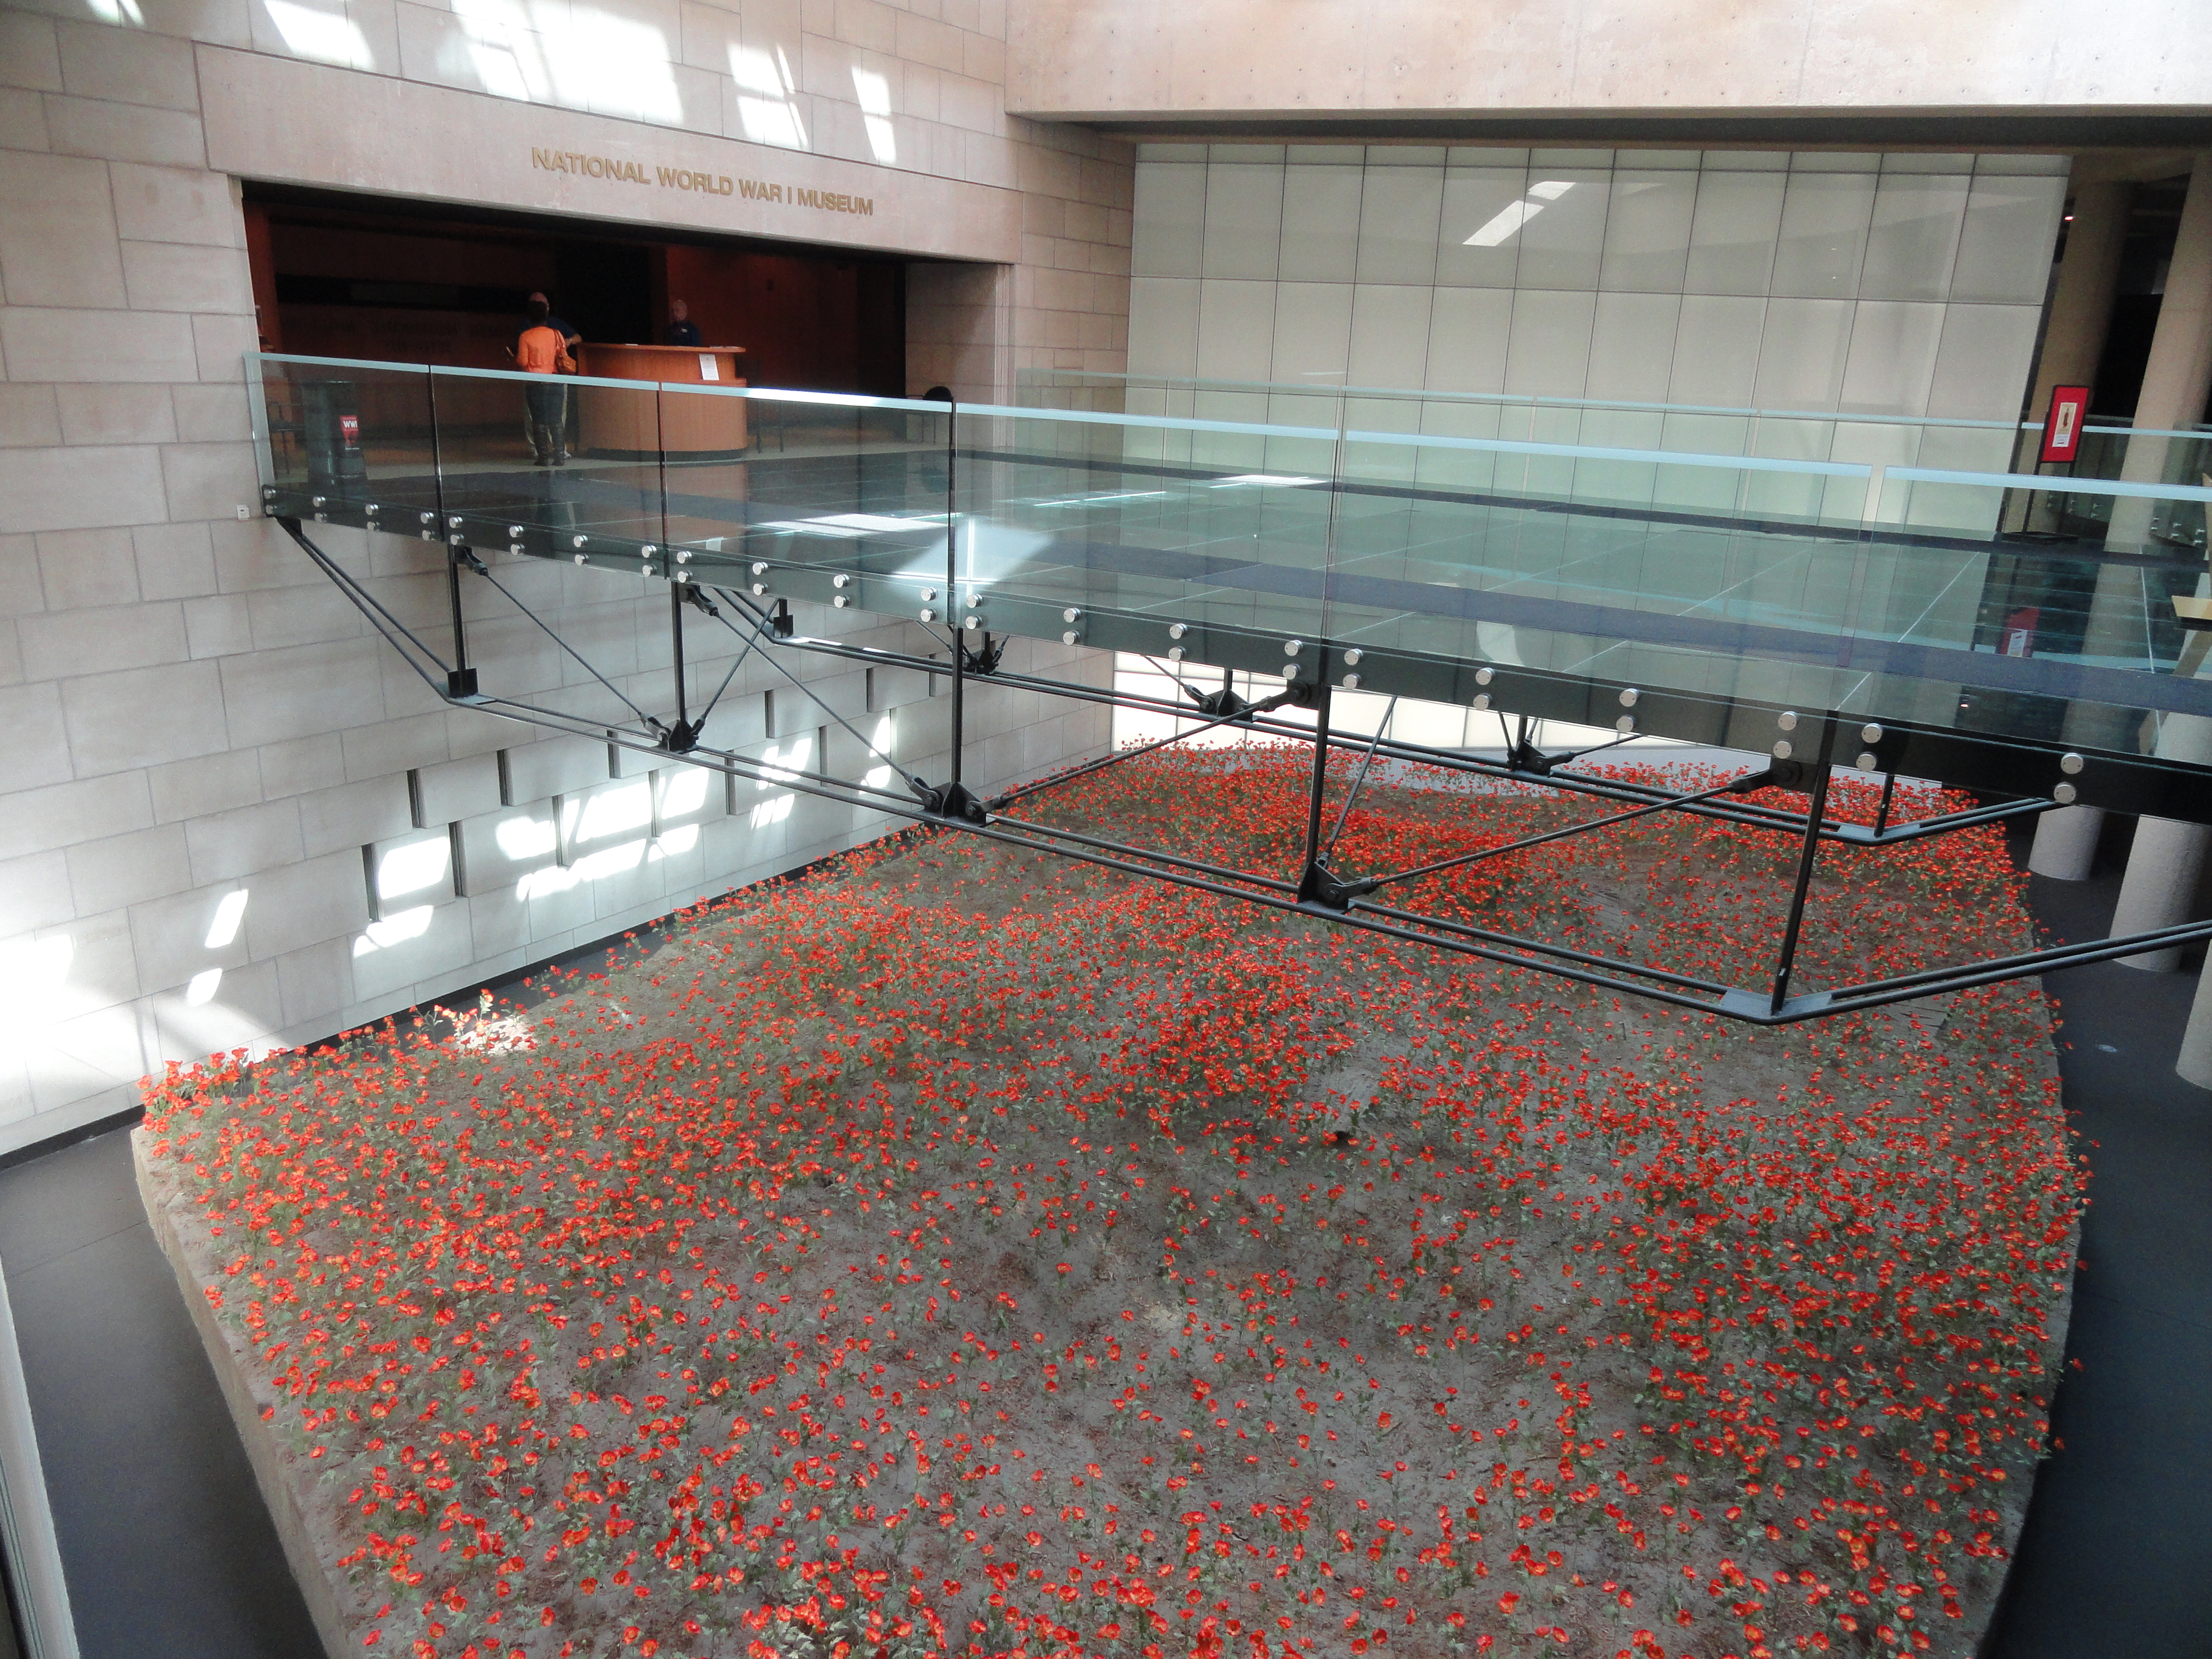 A field of 9,000 red poppies, each one representing 1,000 combatant deaths